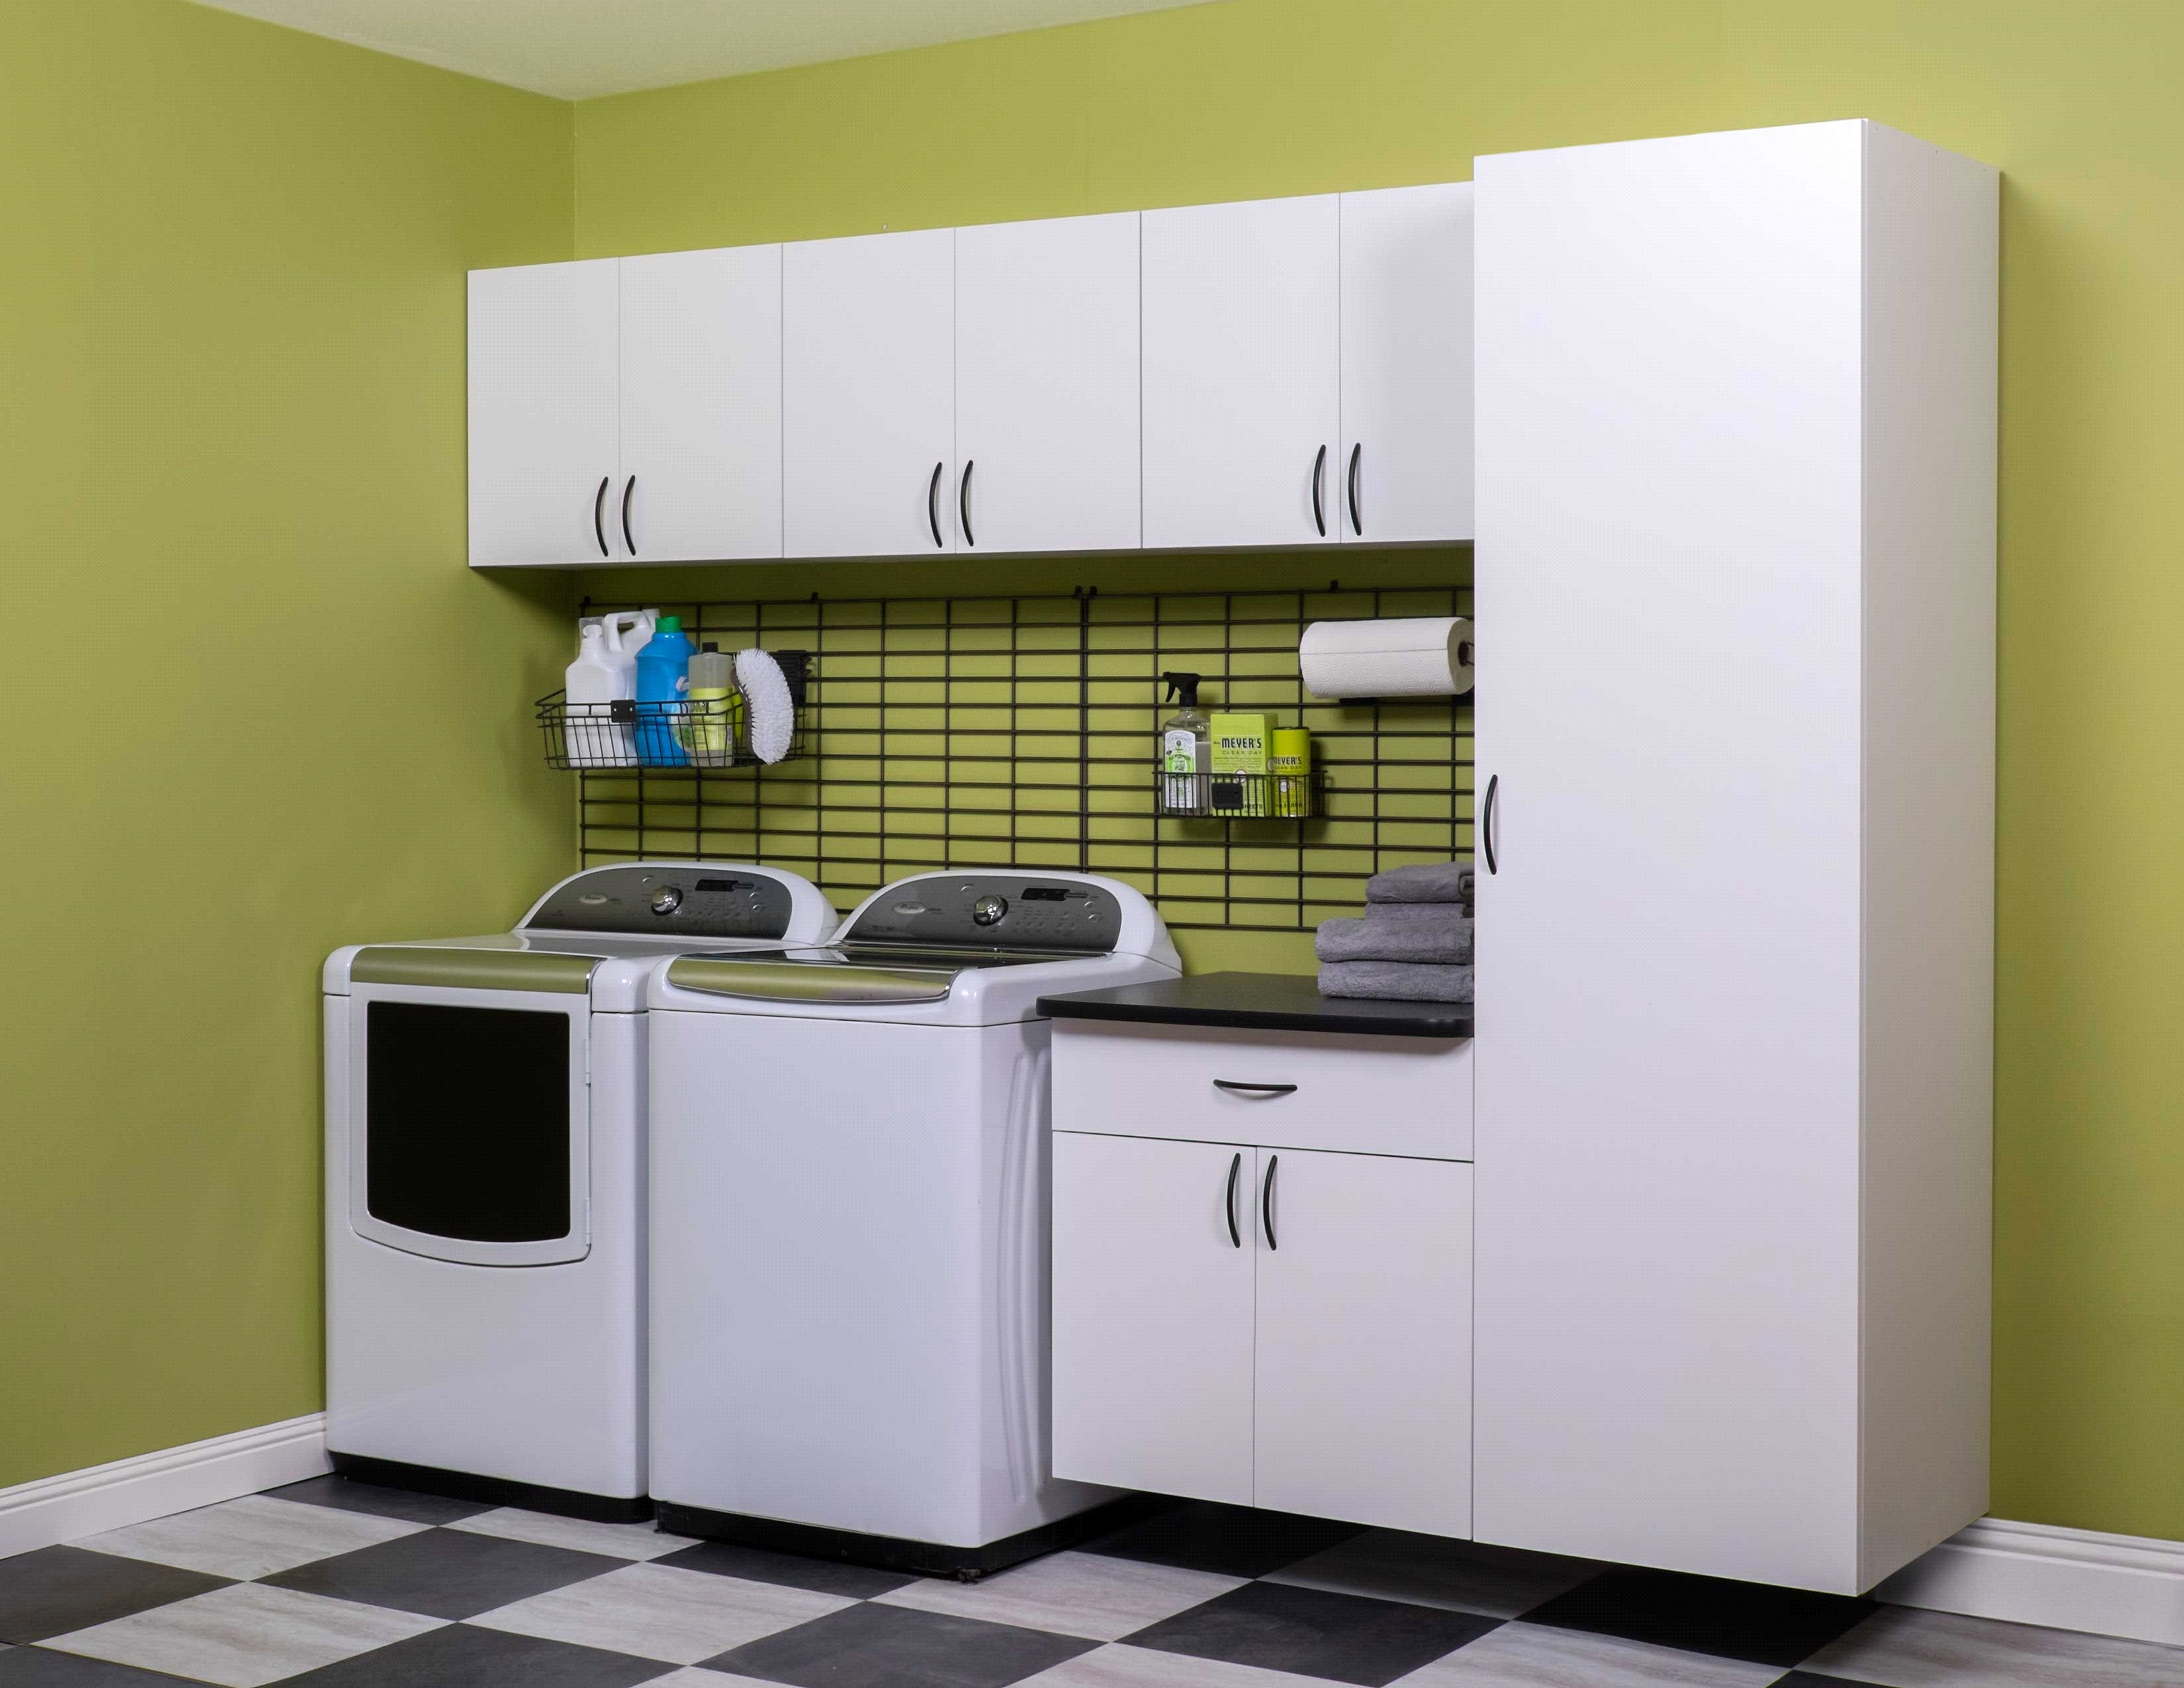 simple l in featured for island top little laundry rooms wall terrific illustration and machines most on inspirations cabinet decorating decor quotes visited clothes with de of image shaped decals ideas white design added wooden featuring home reads girl nice room drying big